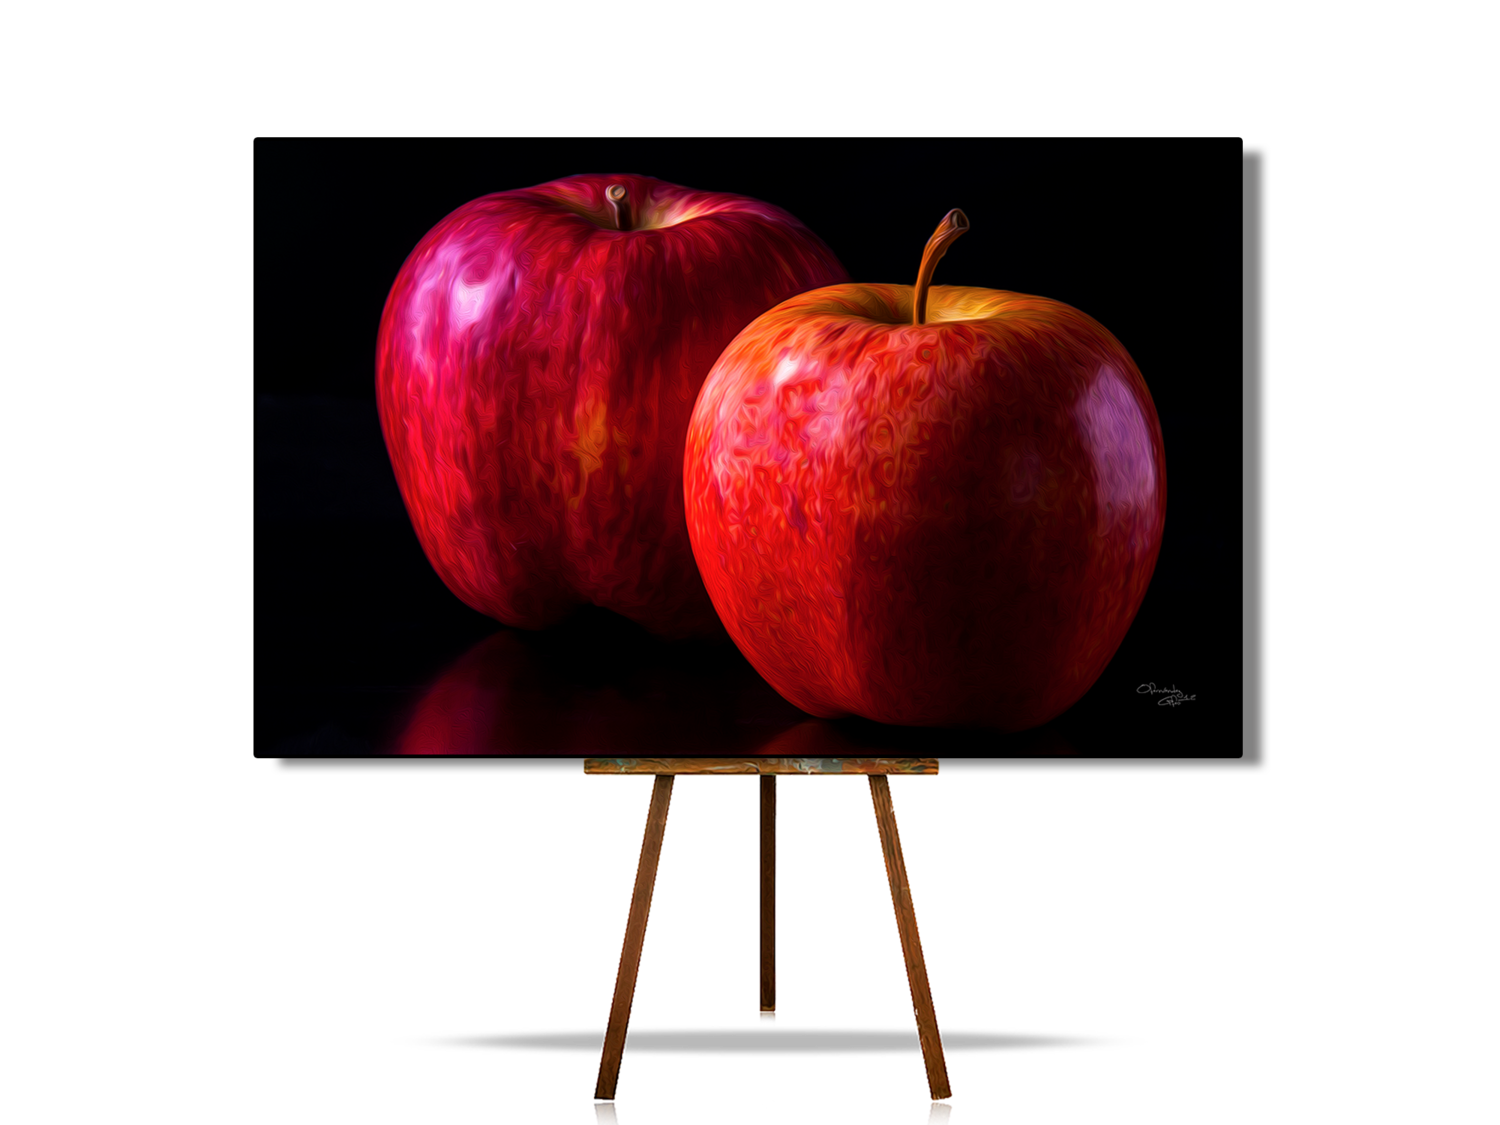 Still Life In Art, Still Life With Apple, Realistic Still Life